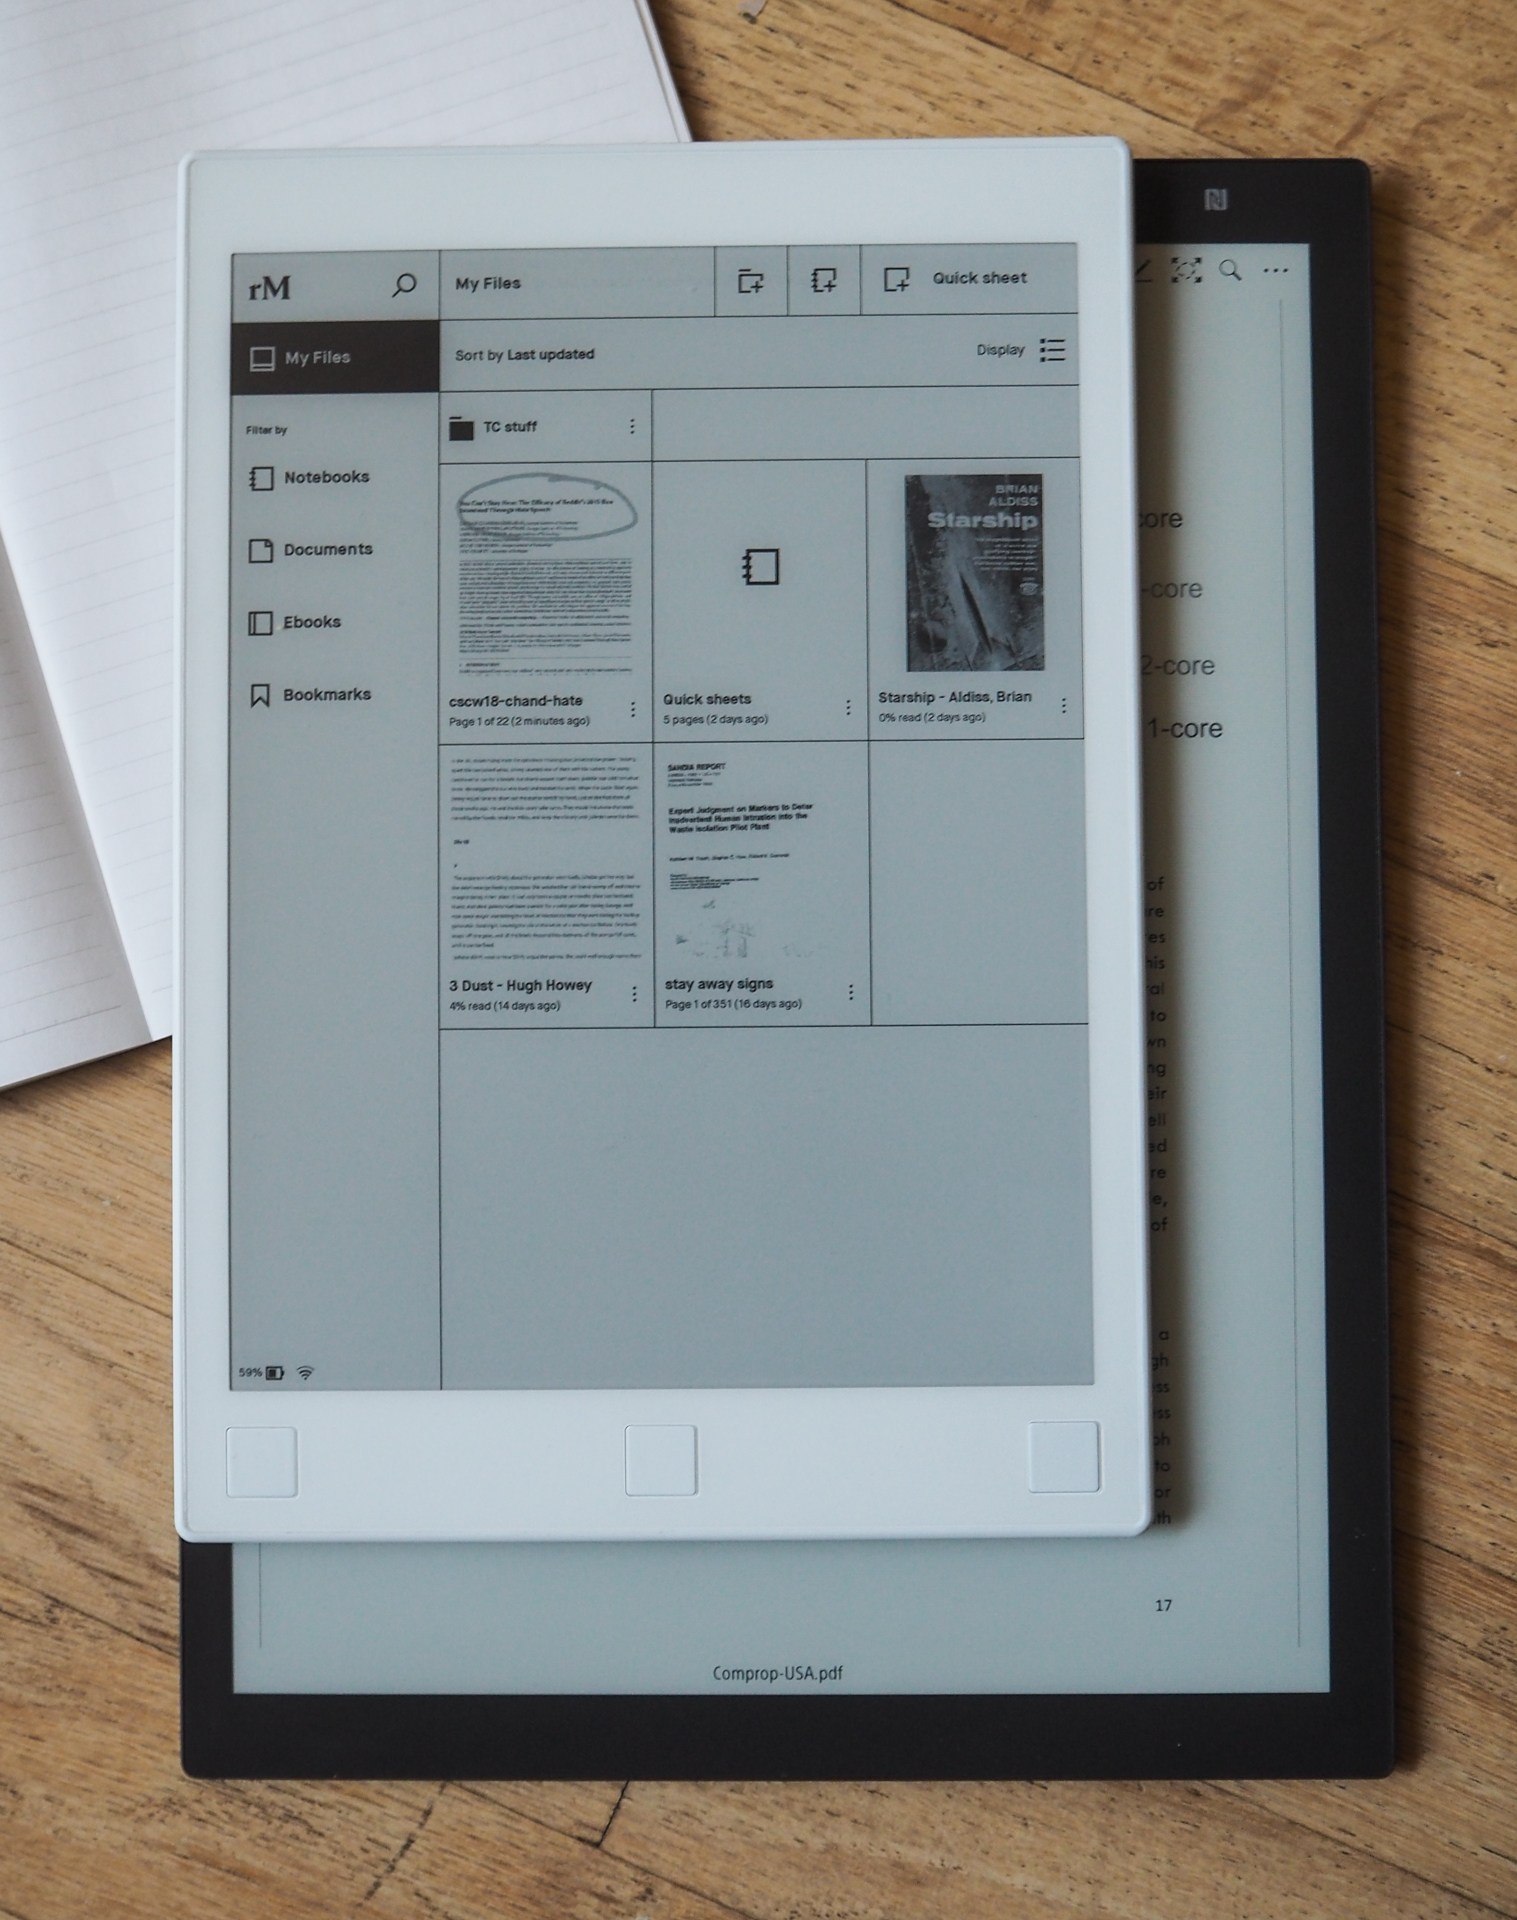 Sony and reMarkable's dueling e-paper tablets are strange